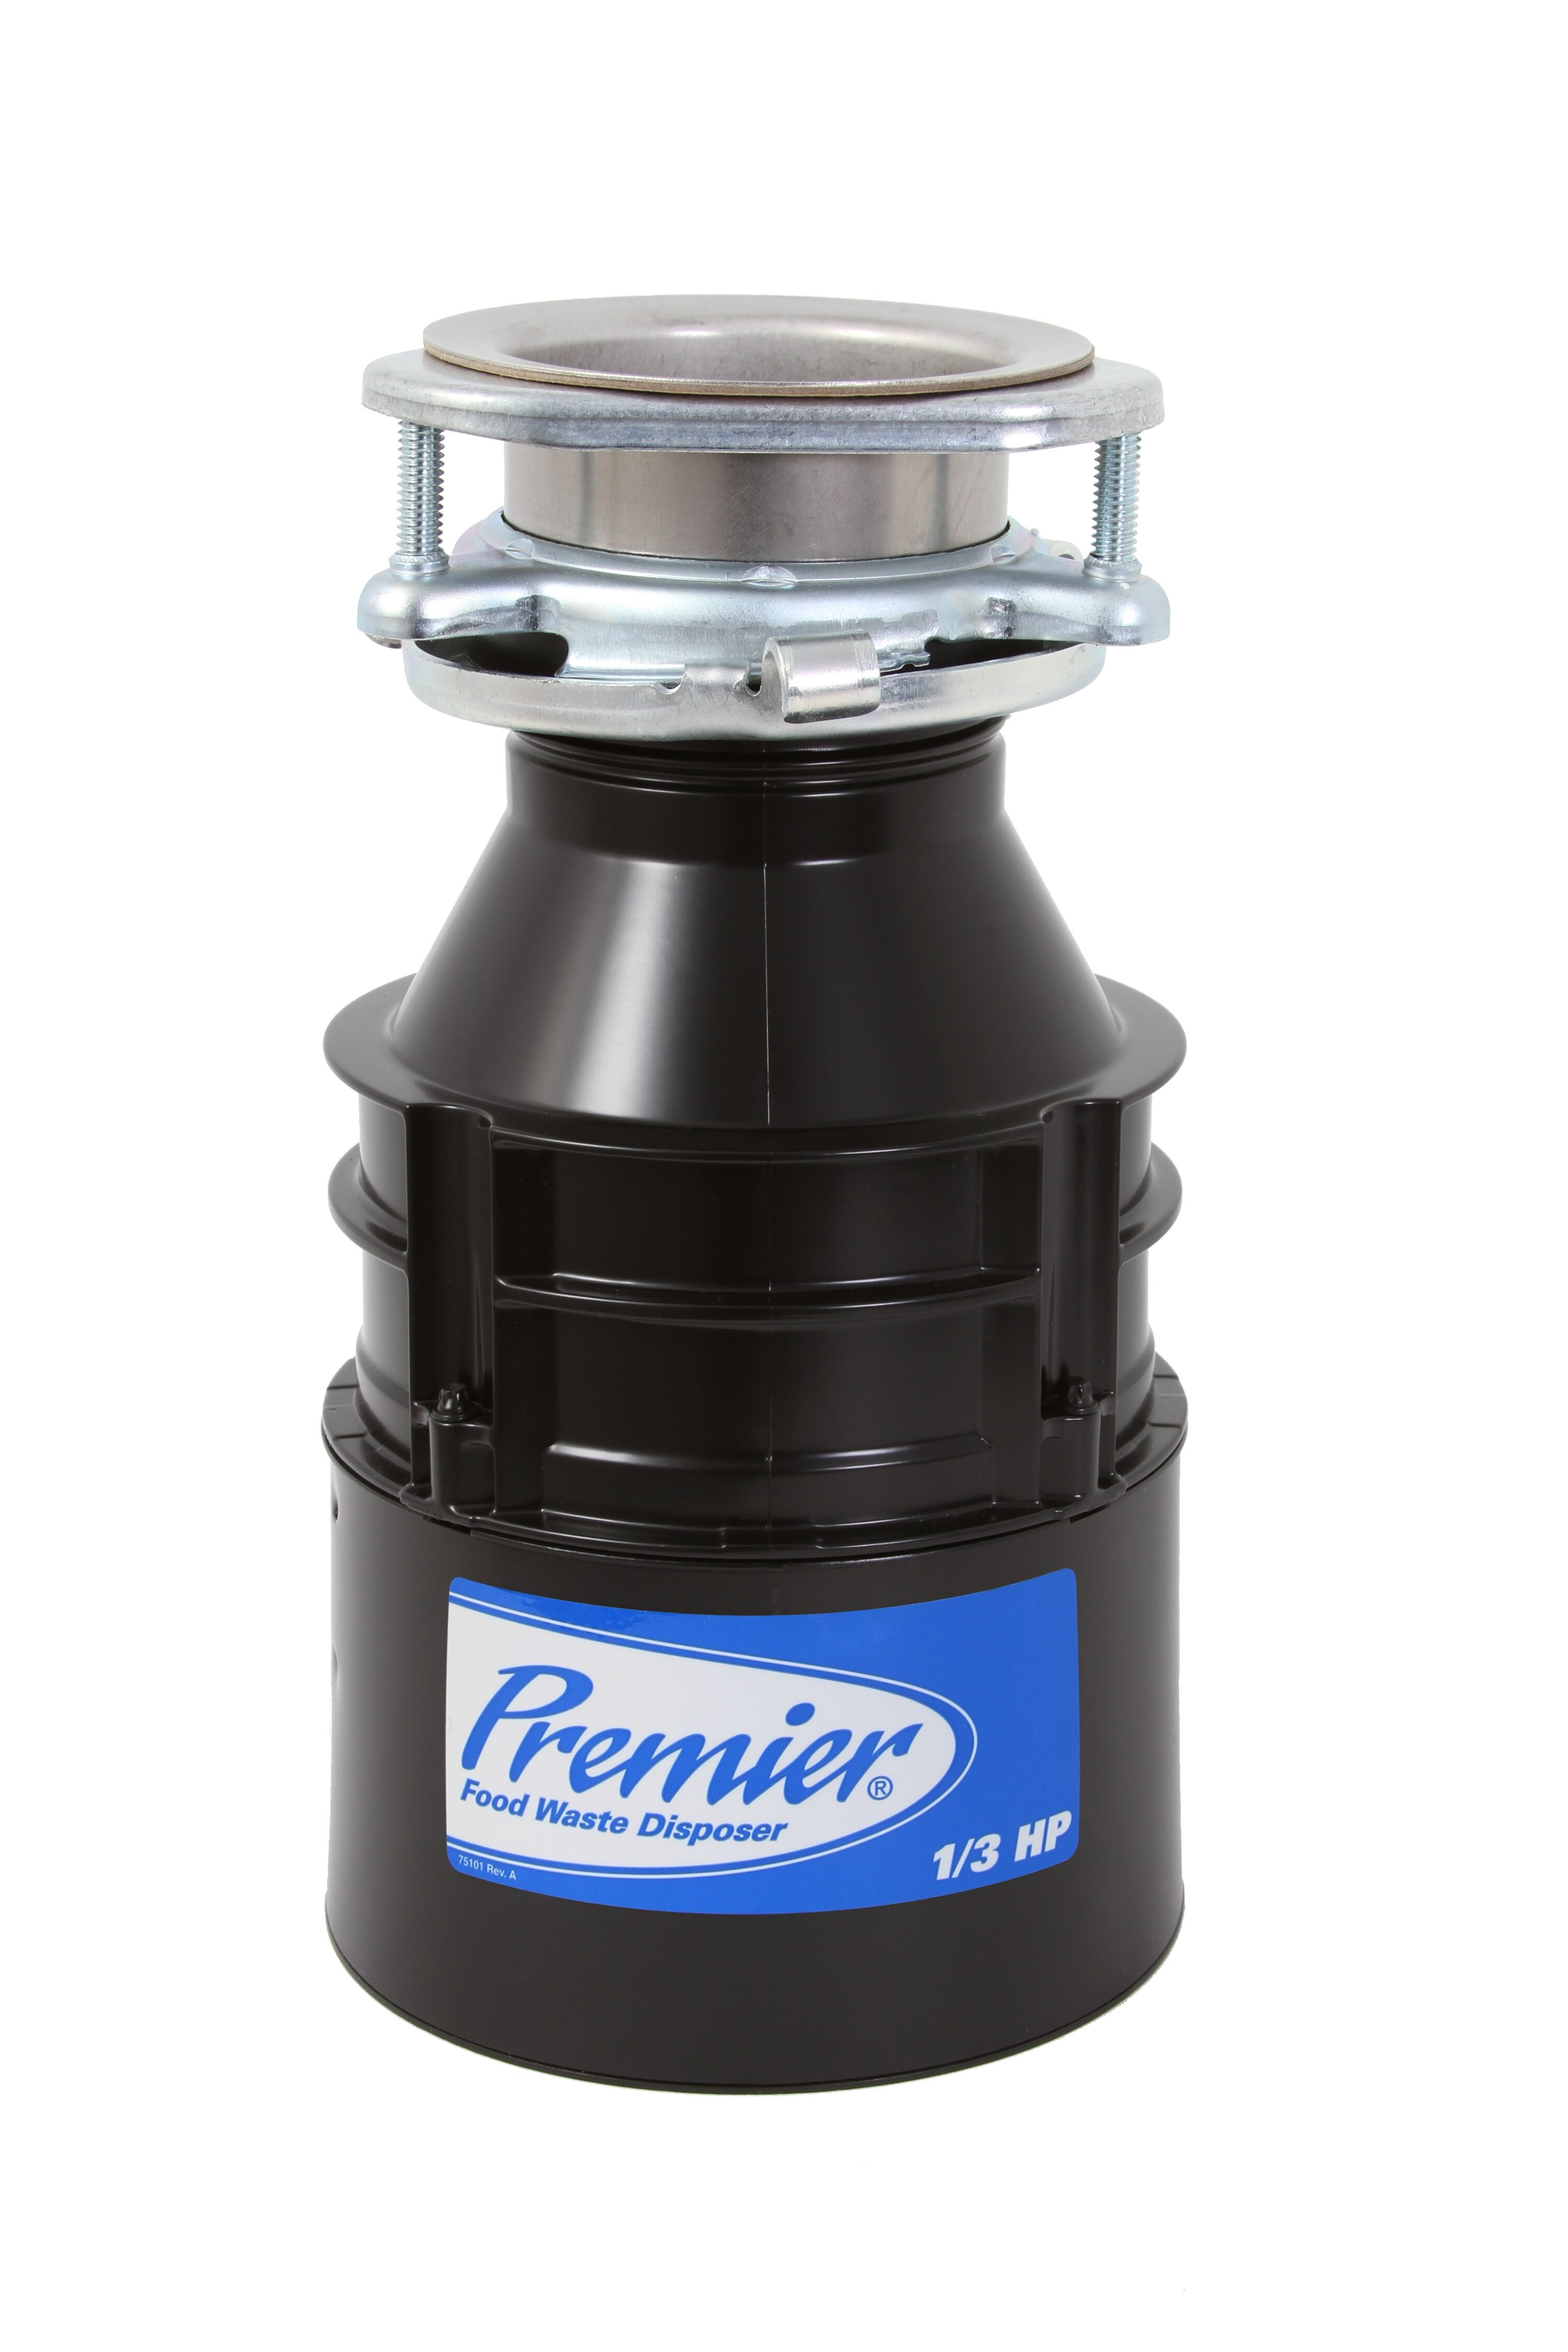 Premier Faucet 1/3 HP Continuous Feed Garbage Disposal & Reviews ...